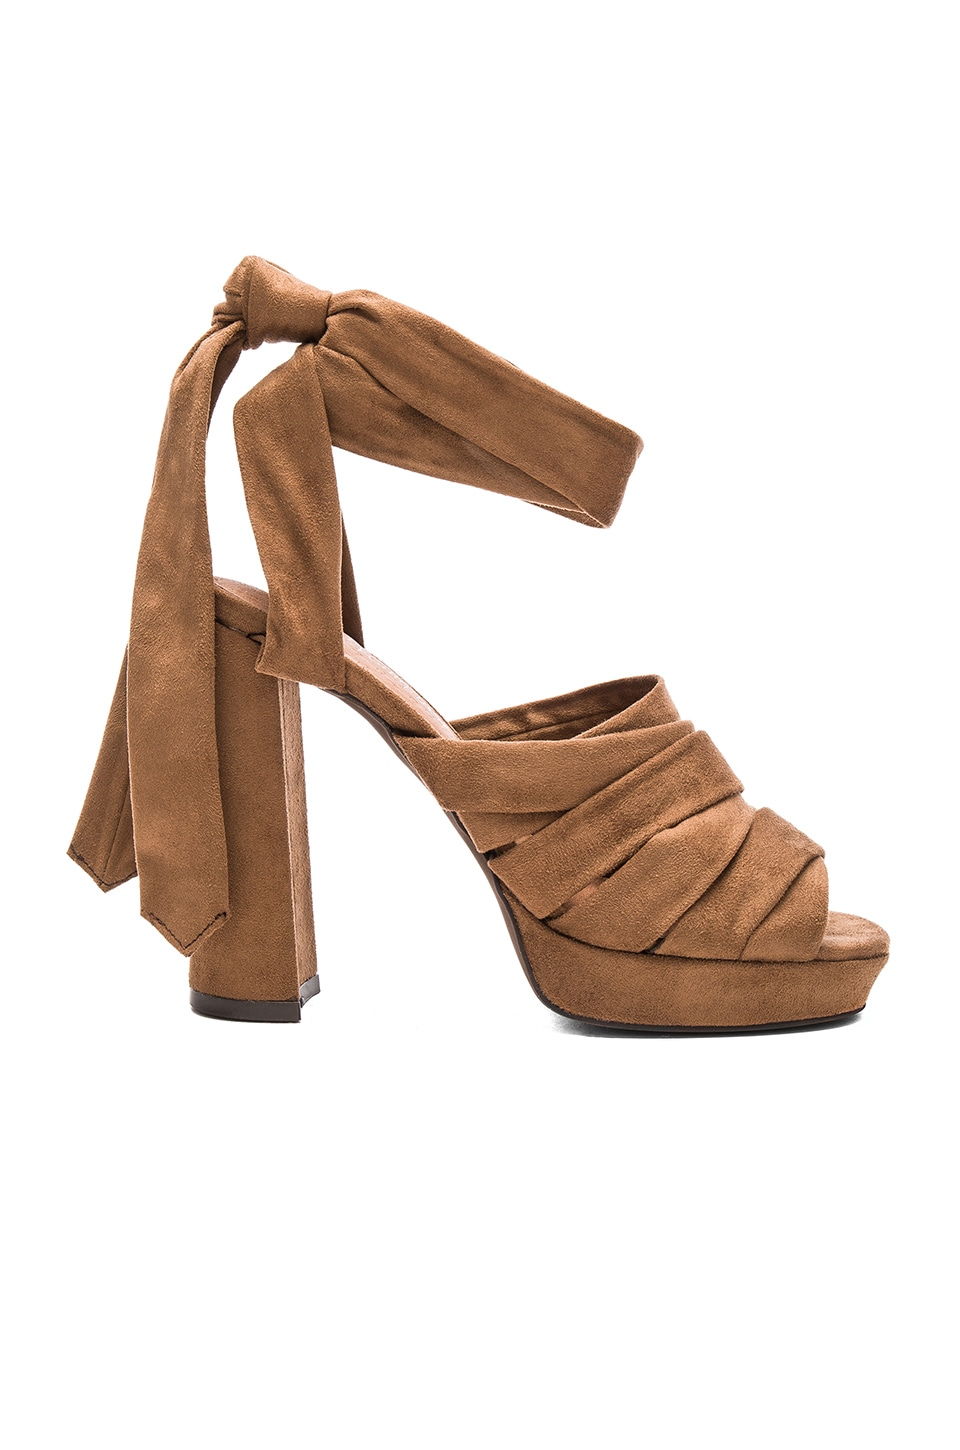 Jeffrey Campbell Chablis Heels in Brown Suede